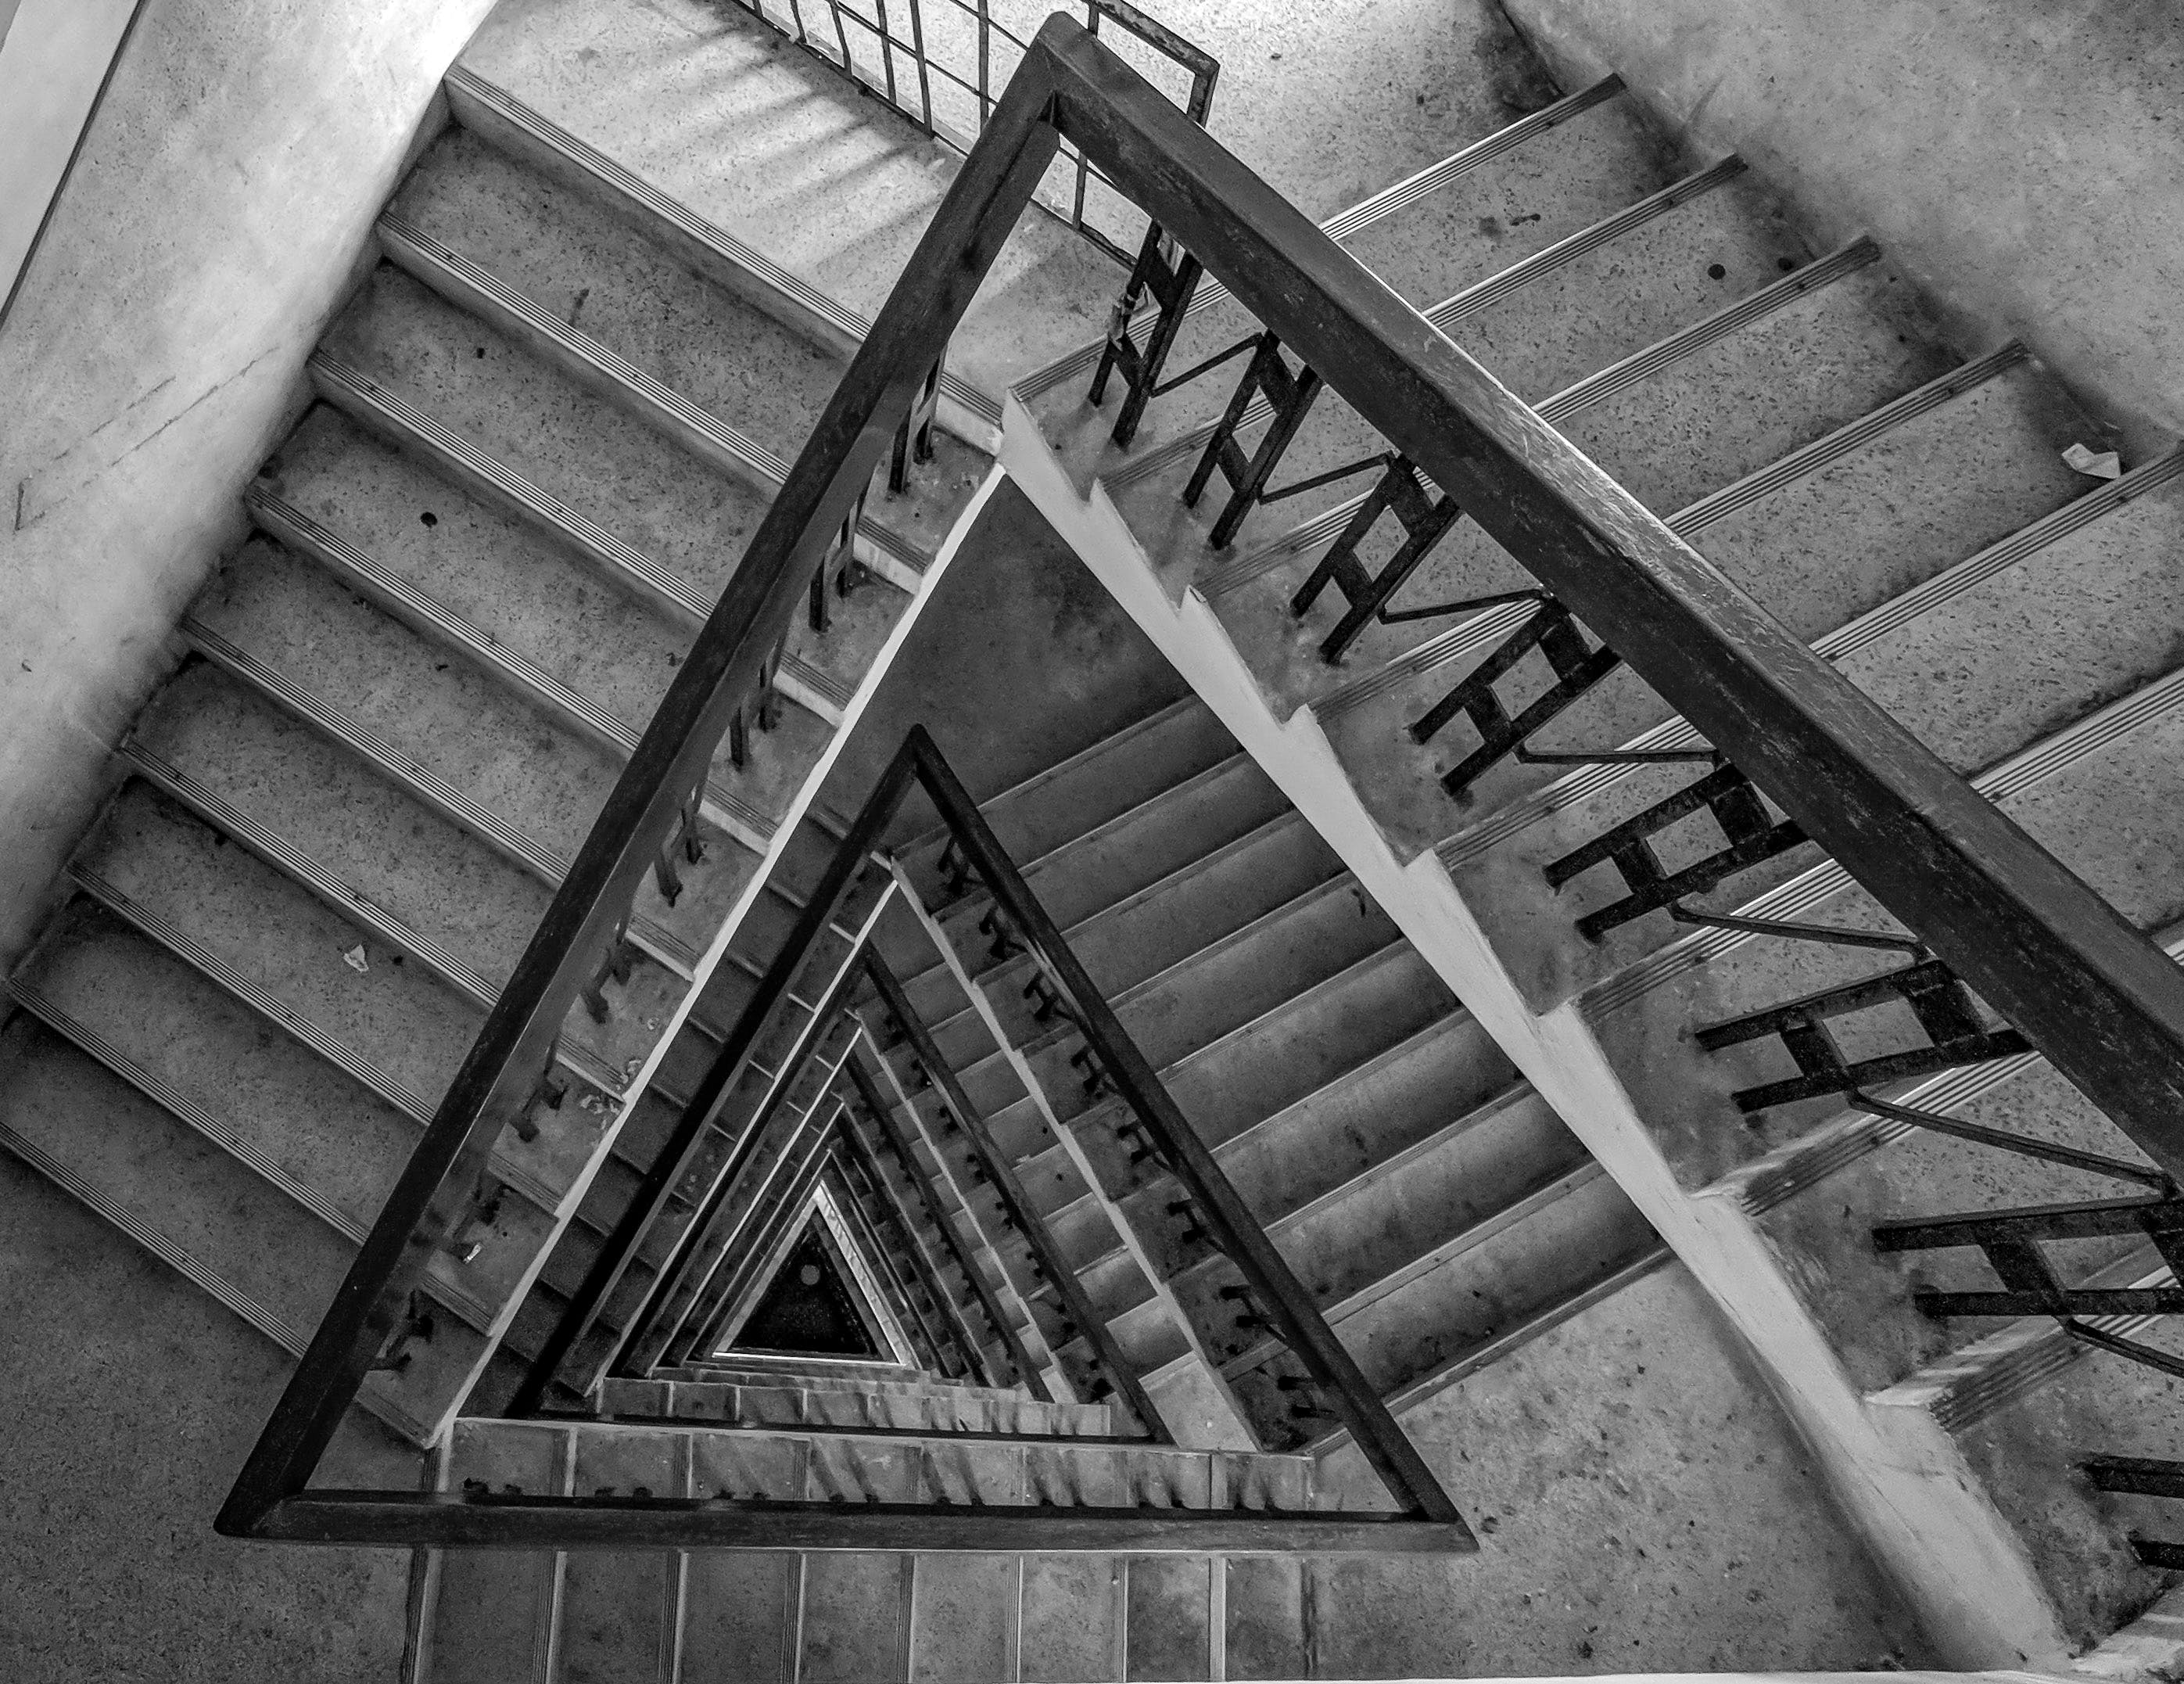 Multi-floor Stairs Grayscale Photo